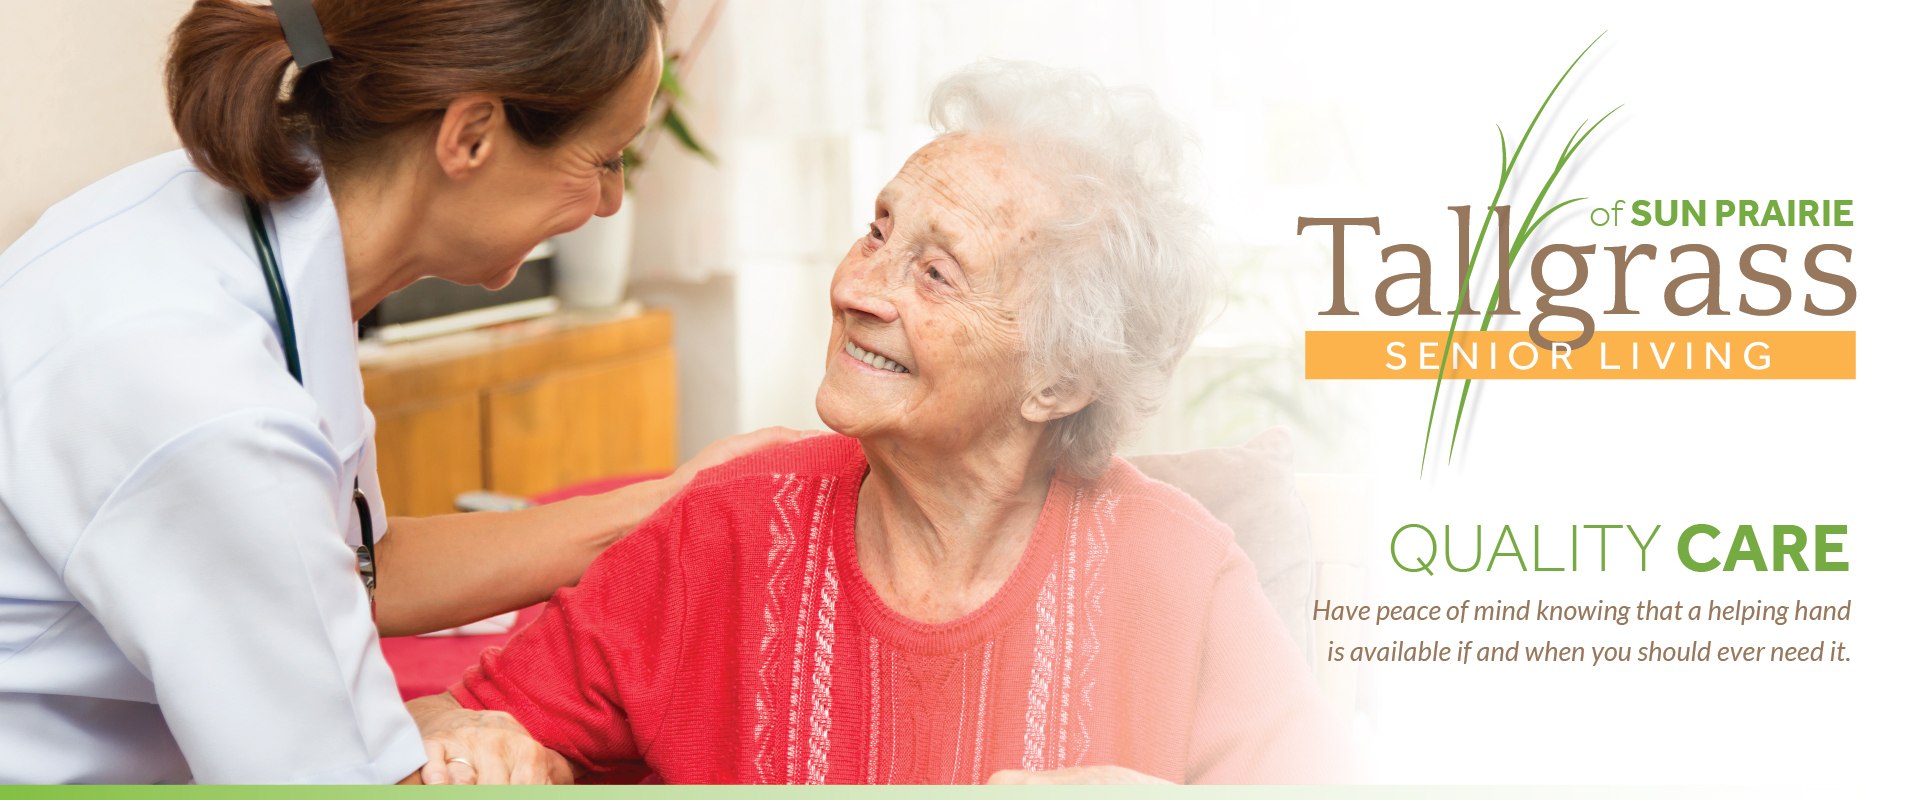 Older senior woman receiving care in her apartment from a healthcare professional.